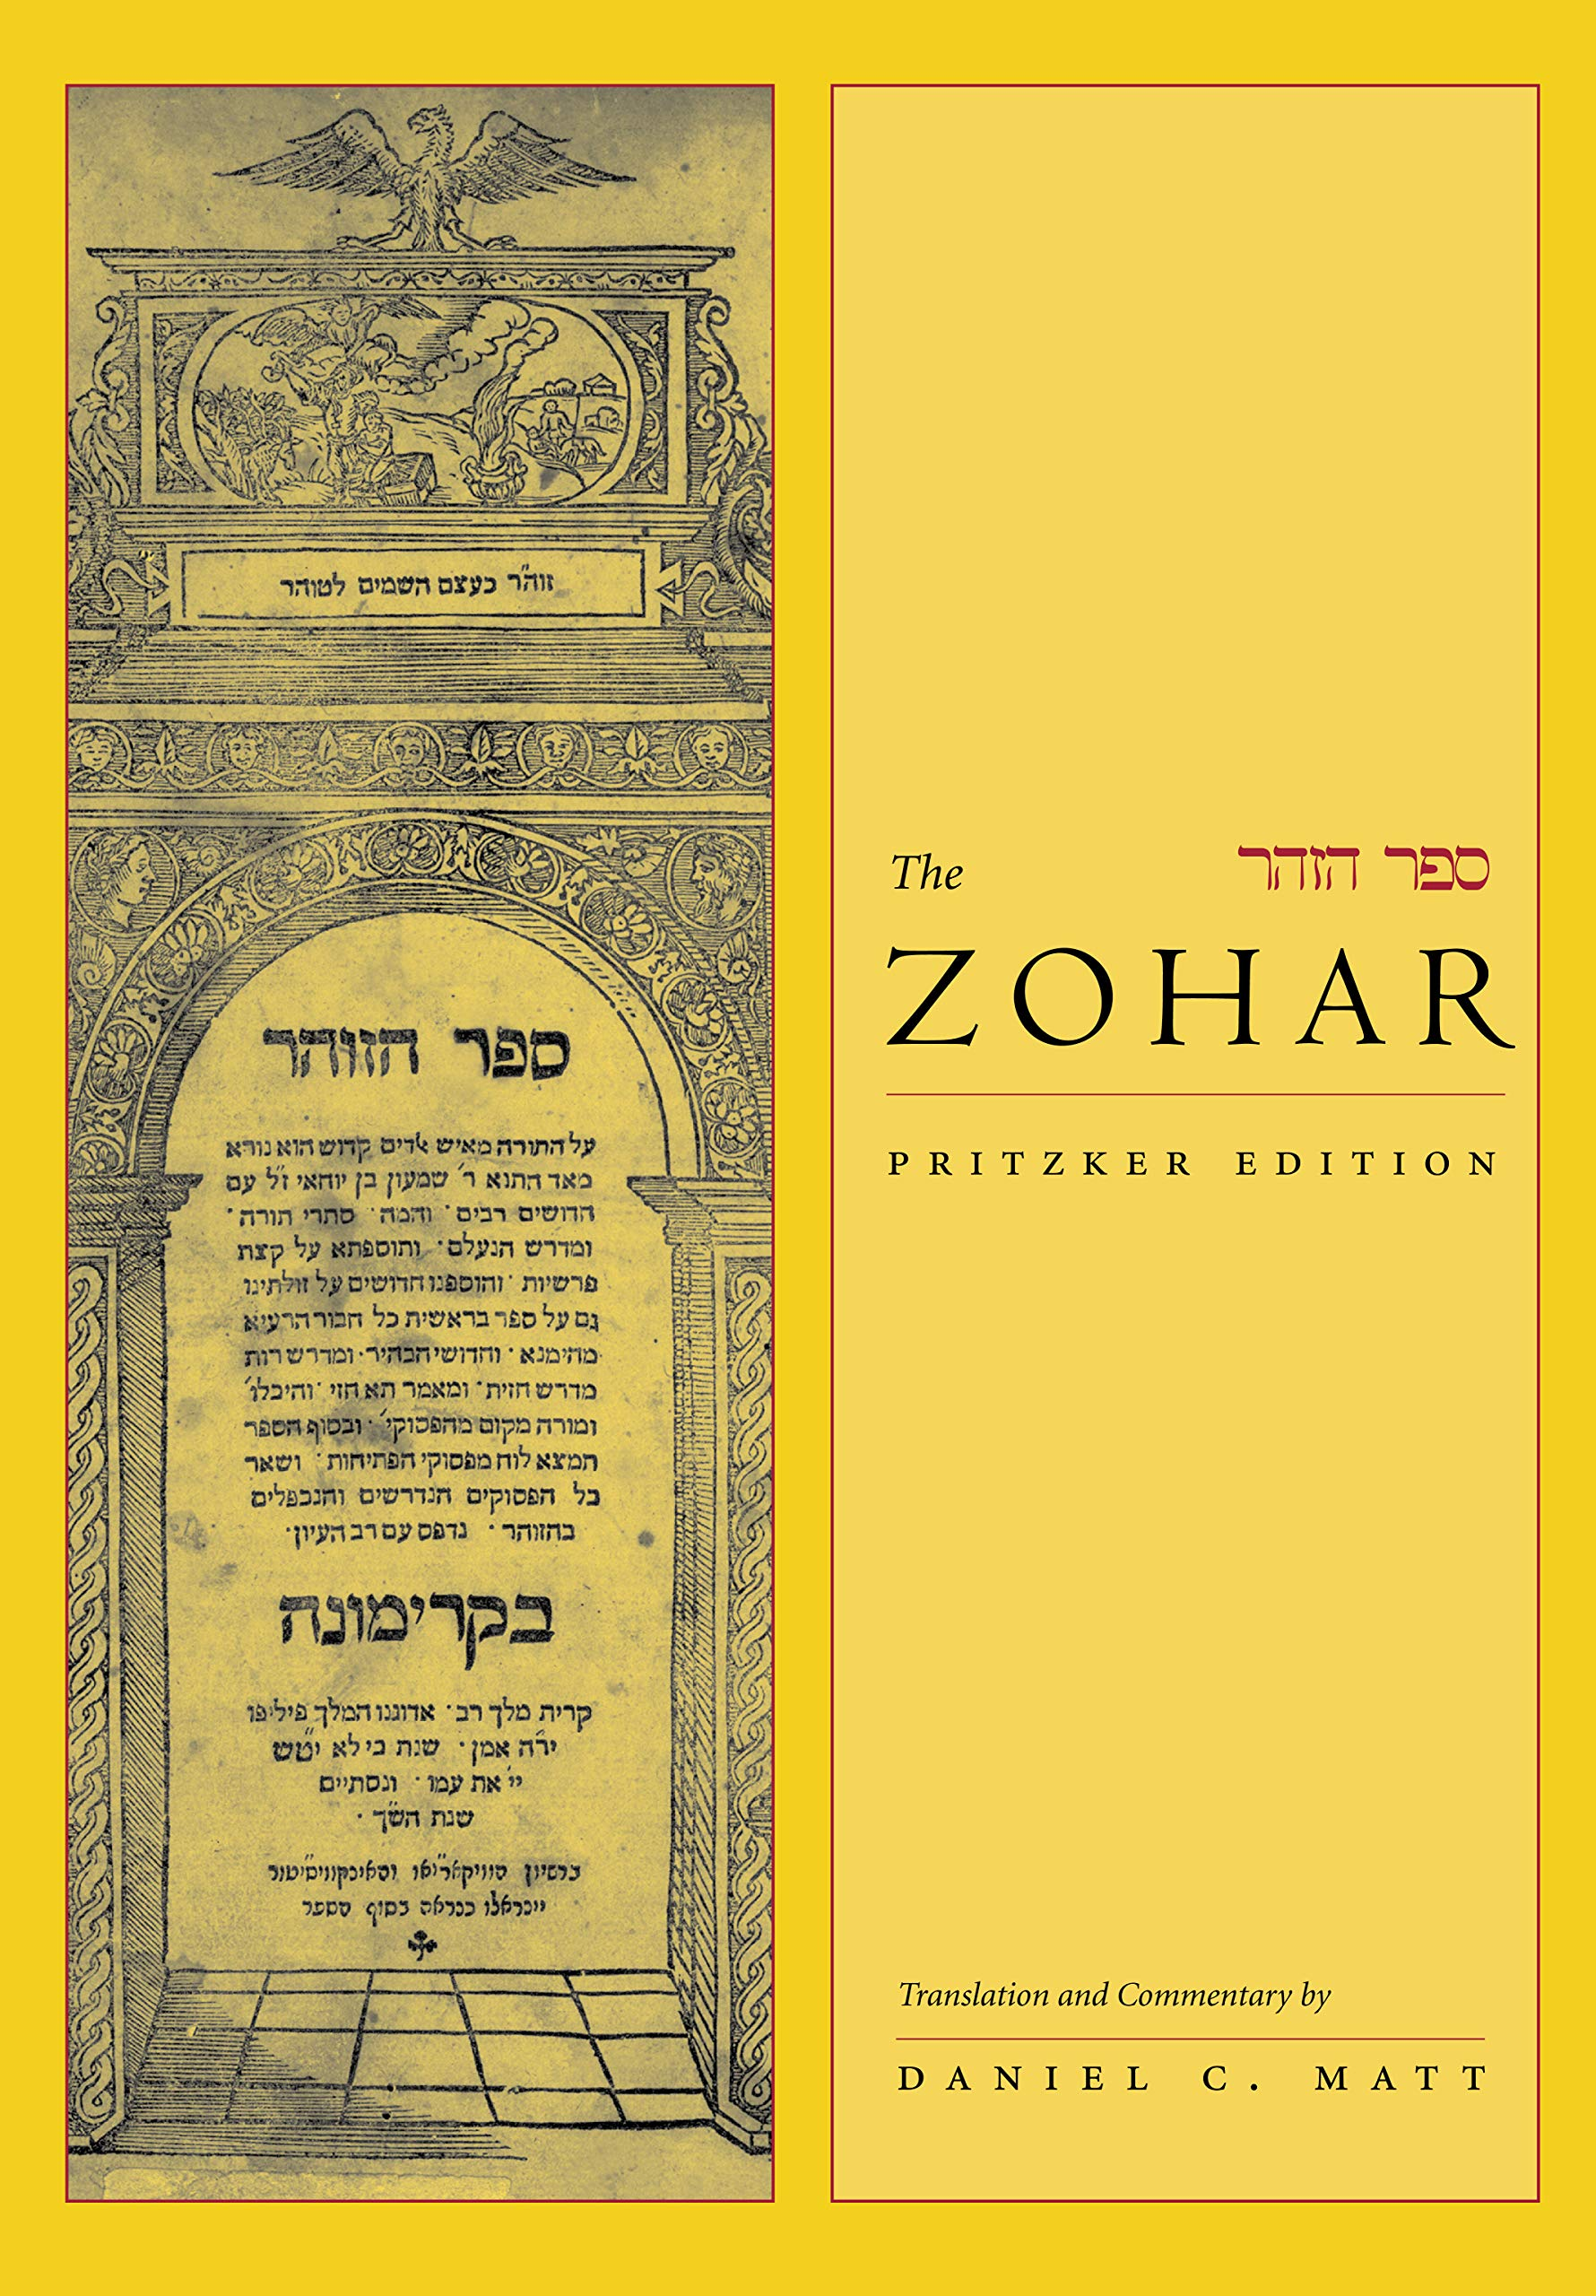 The zohar: pritzker edition, volume one kindle edition by daniel.